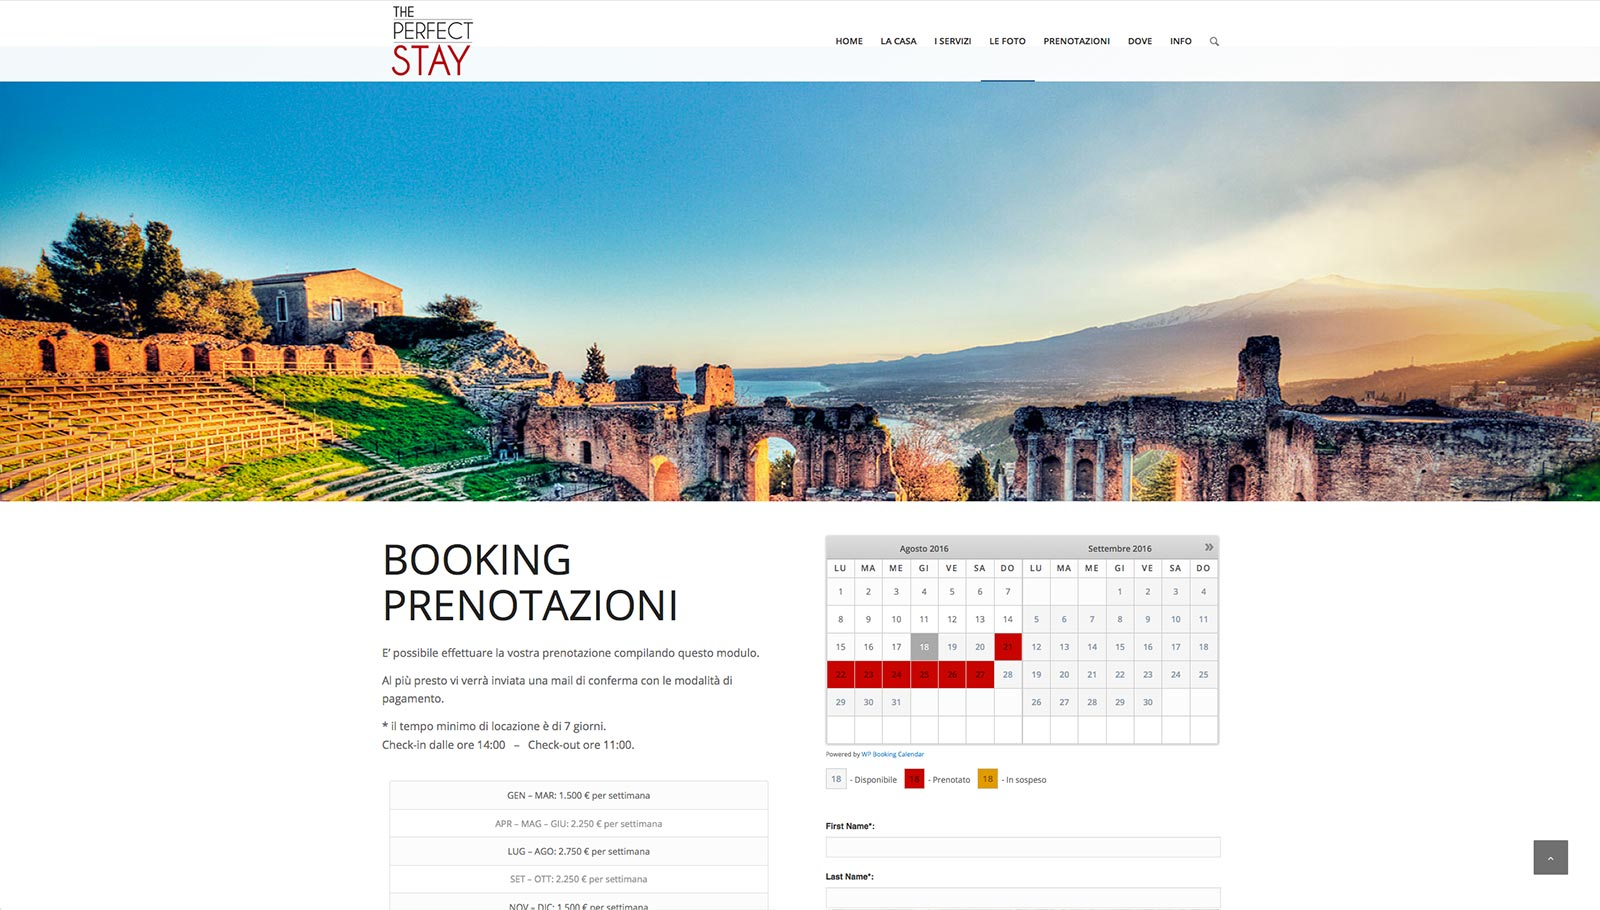 The Perfect Stay website